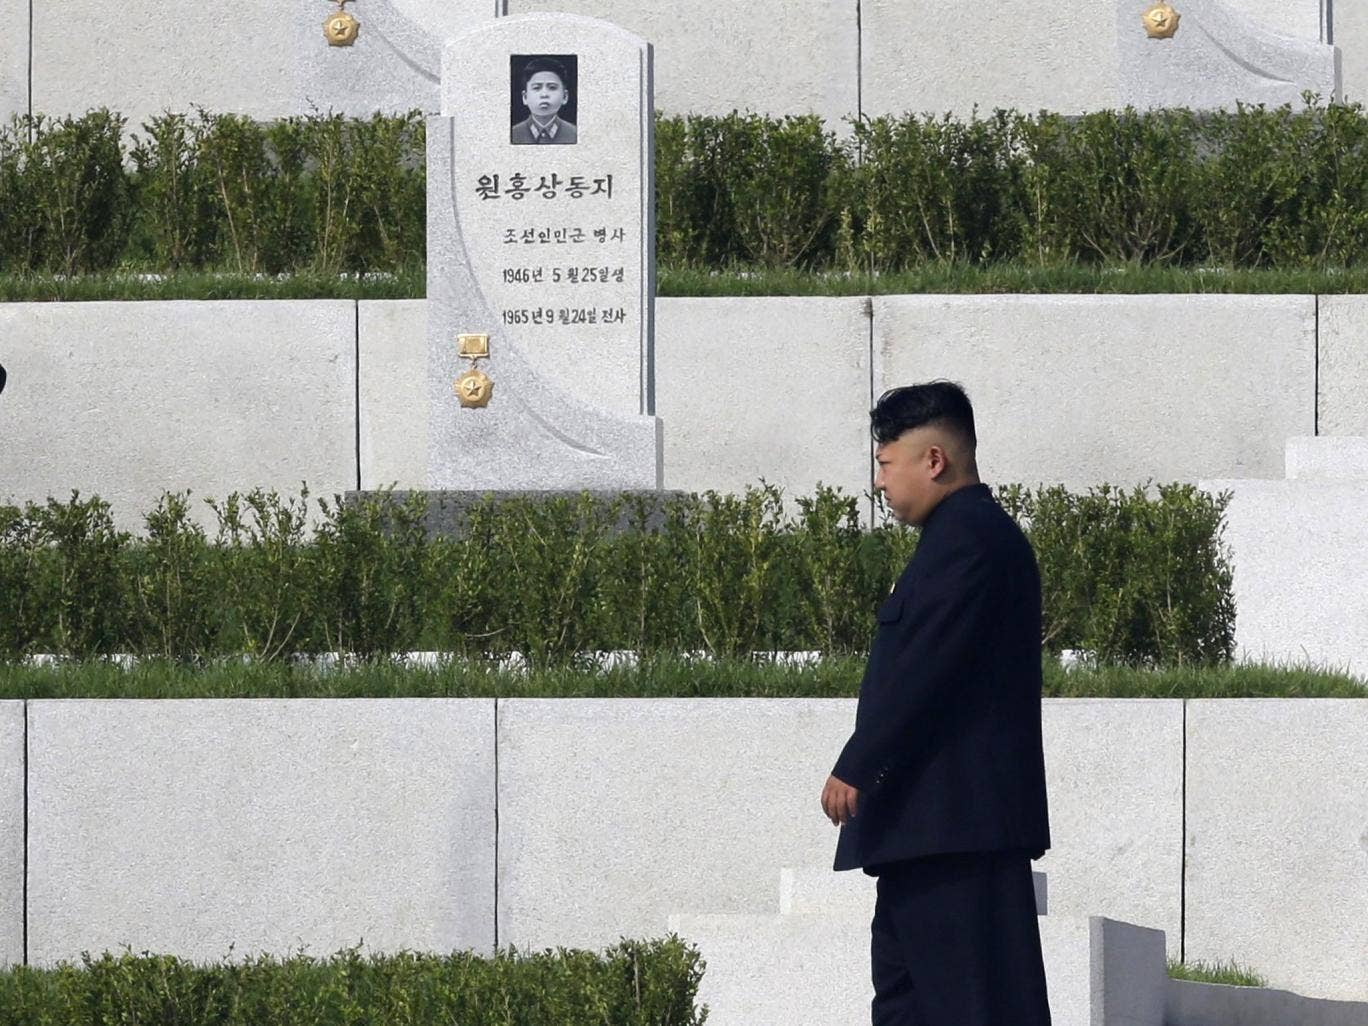 Kim Jong-un walks past tombstones at the opening of the Cemetery of Fallen Fighters in Pyongyang